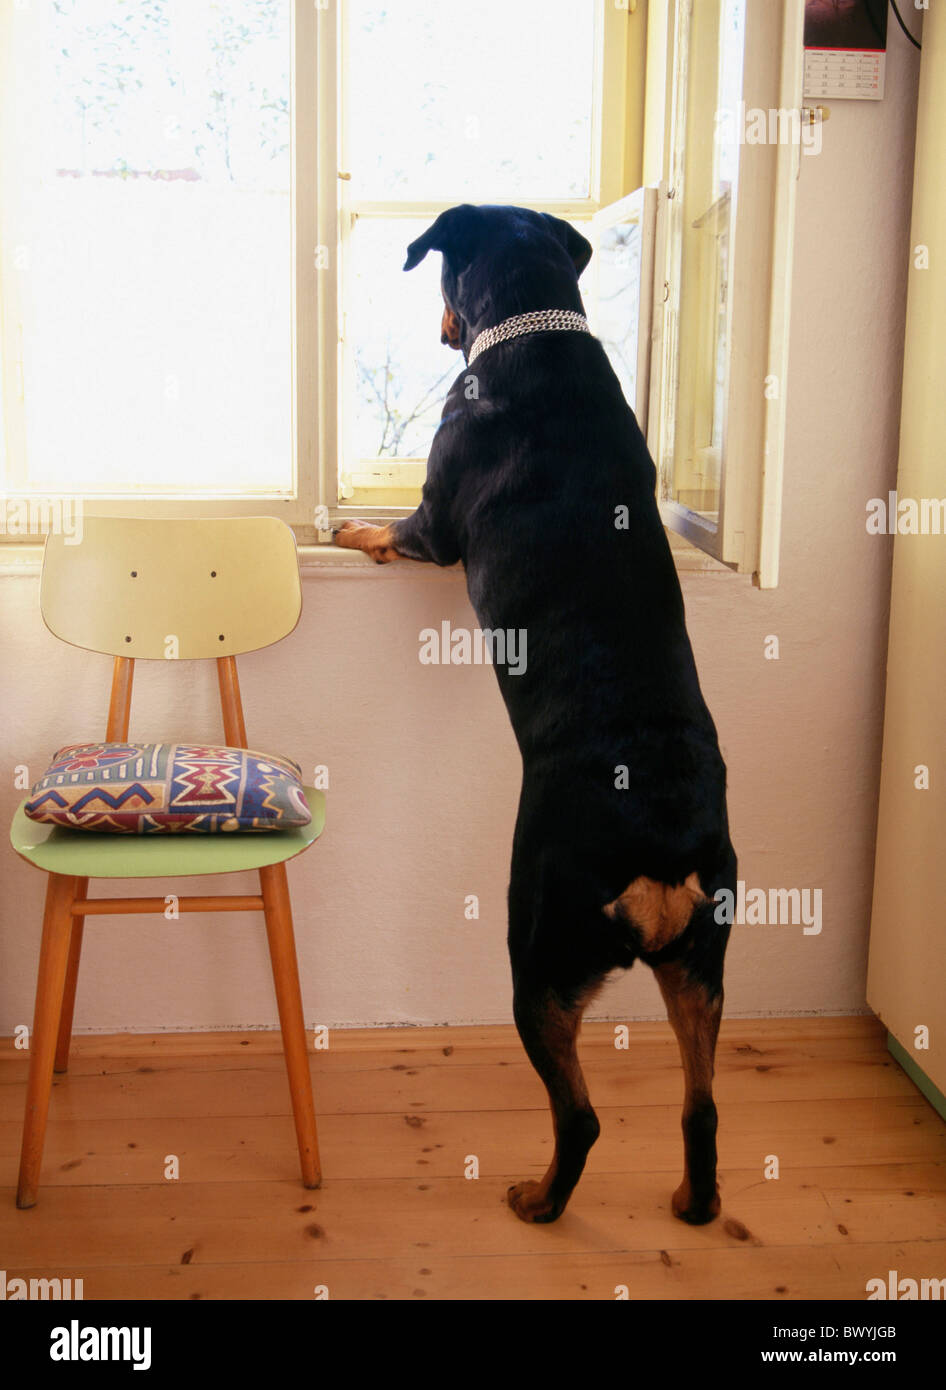 Window look out dog bitch rottweiler back view situation position